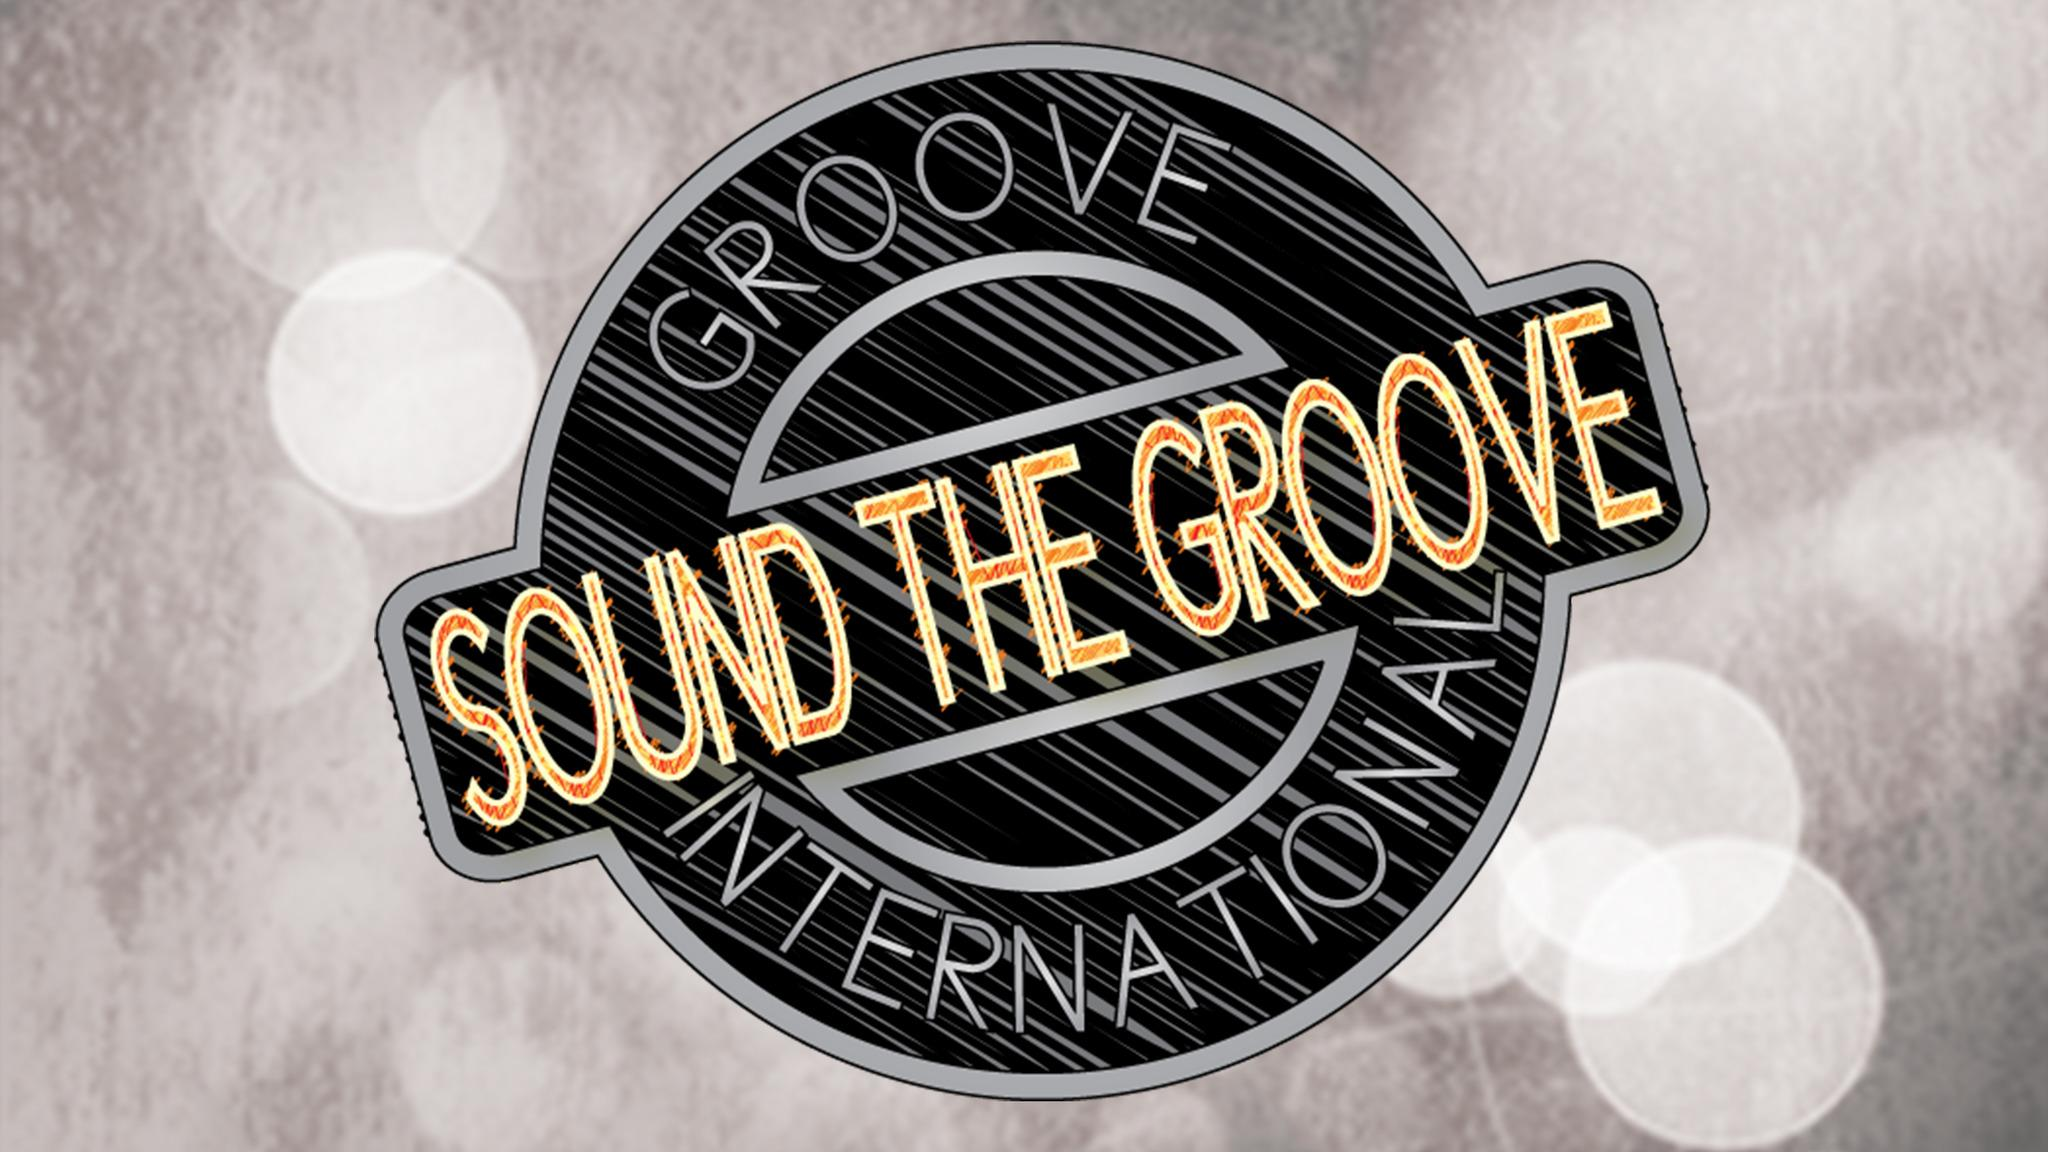 Groove International